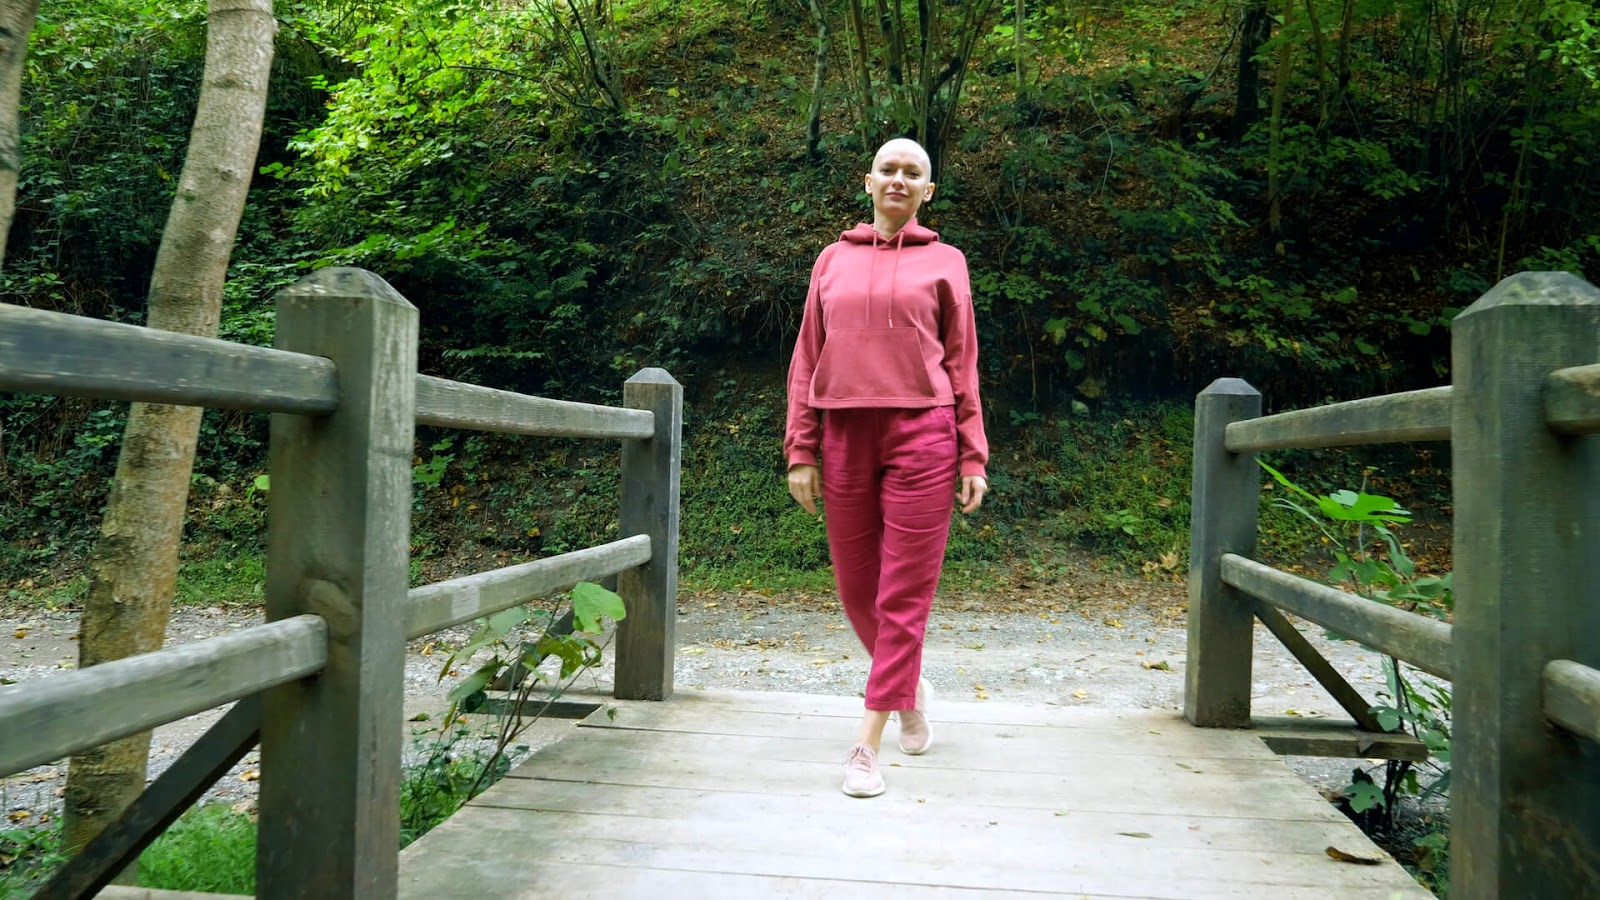 Woman with cancer walking through the park